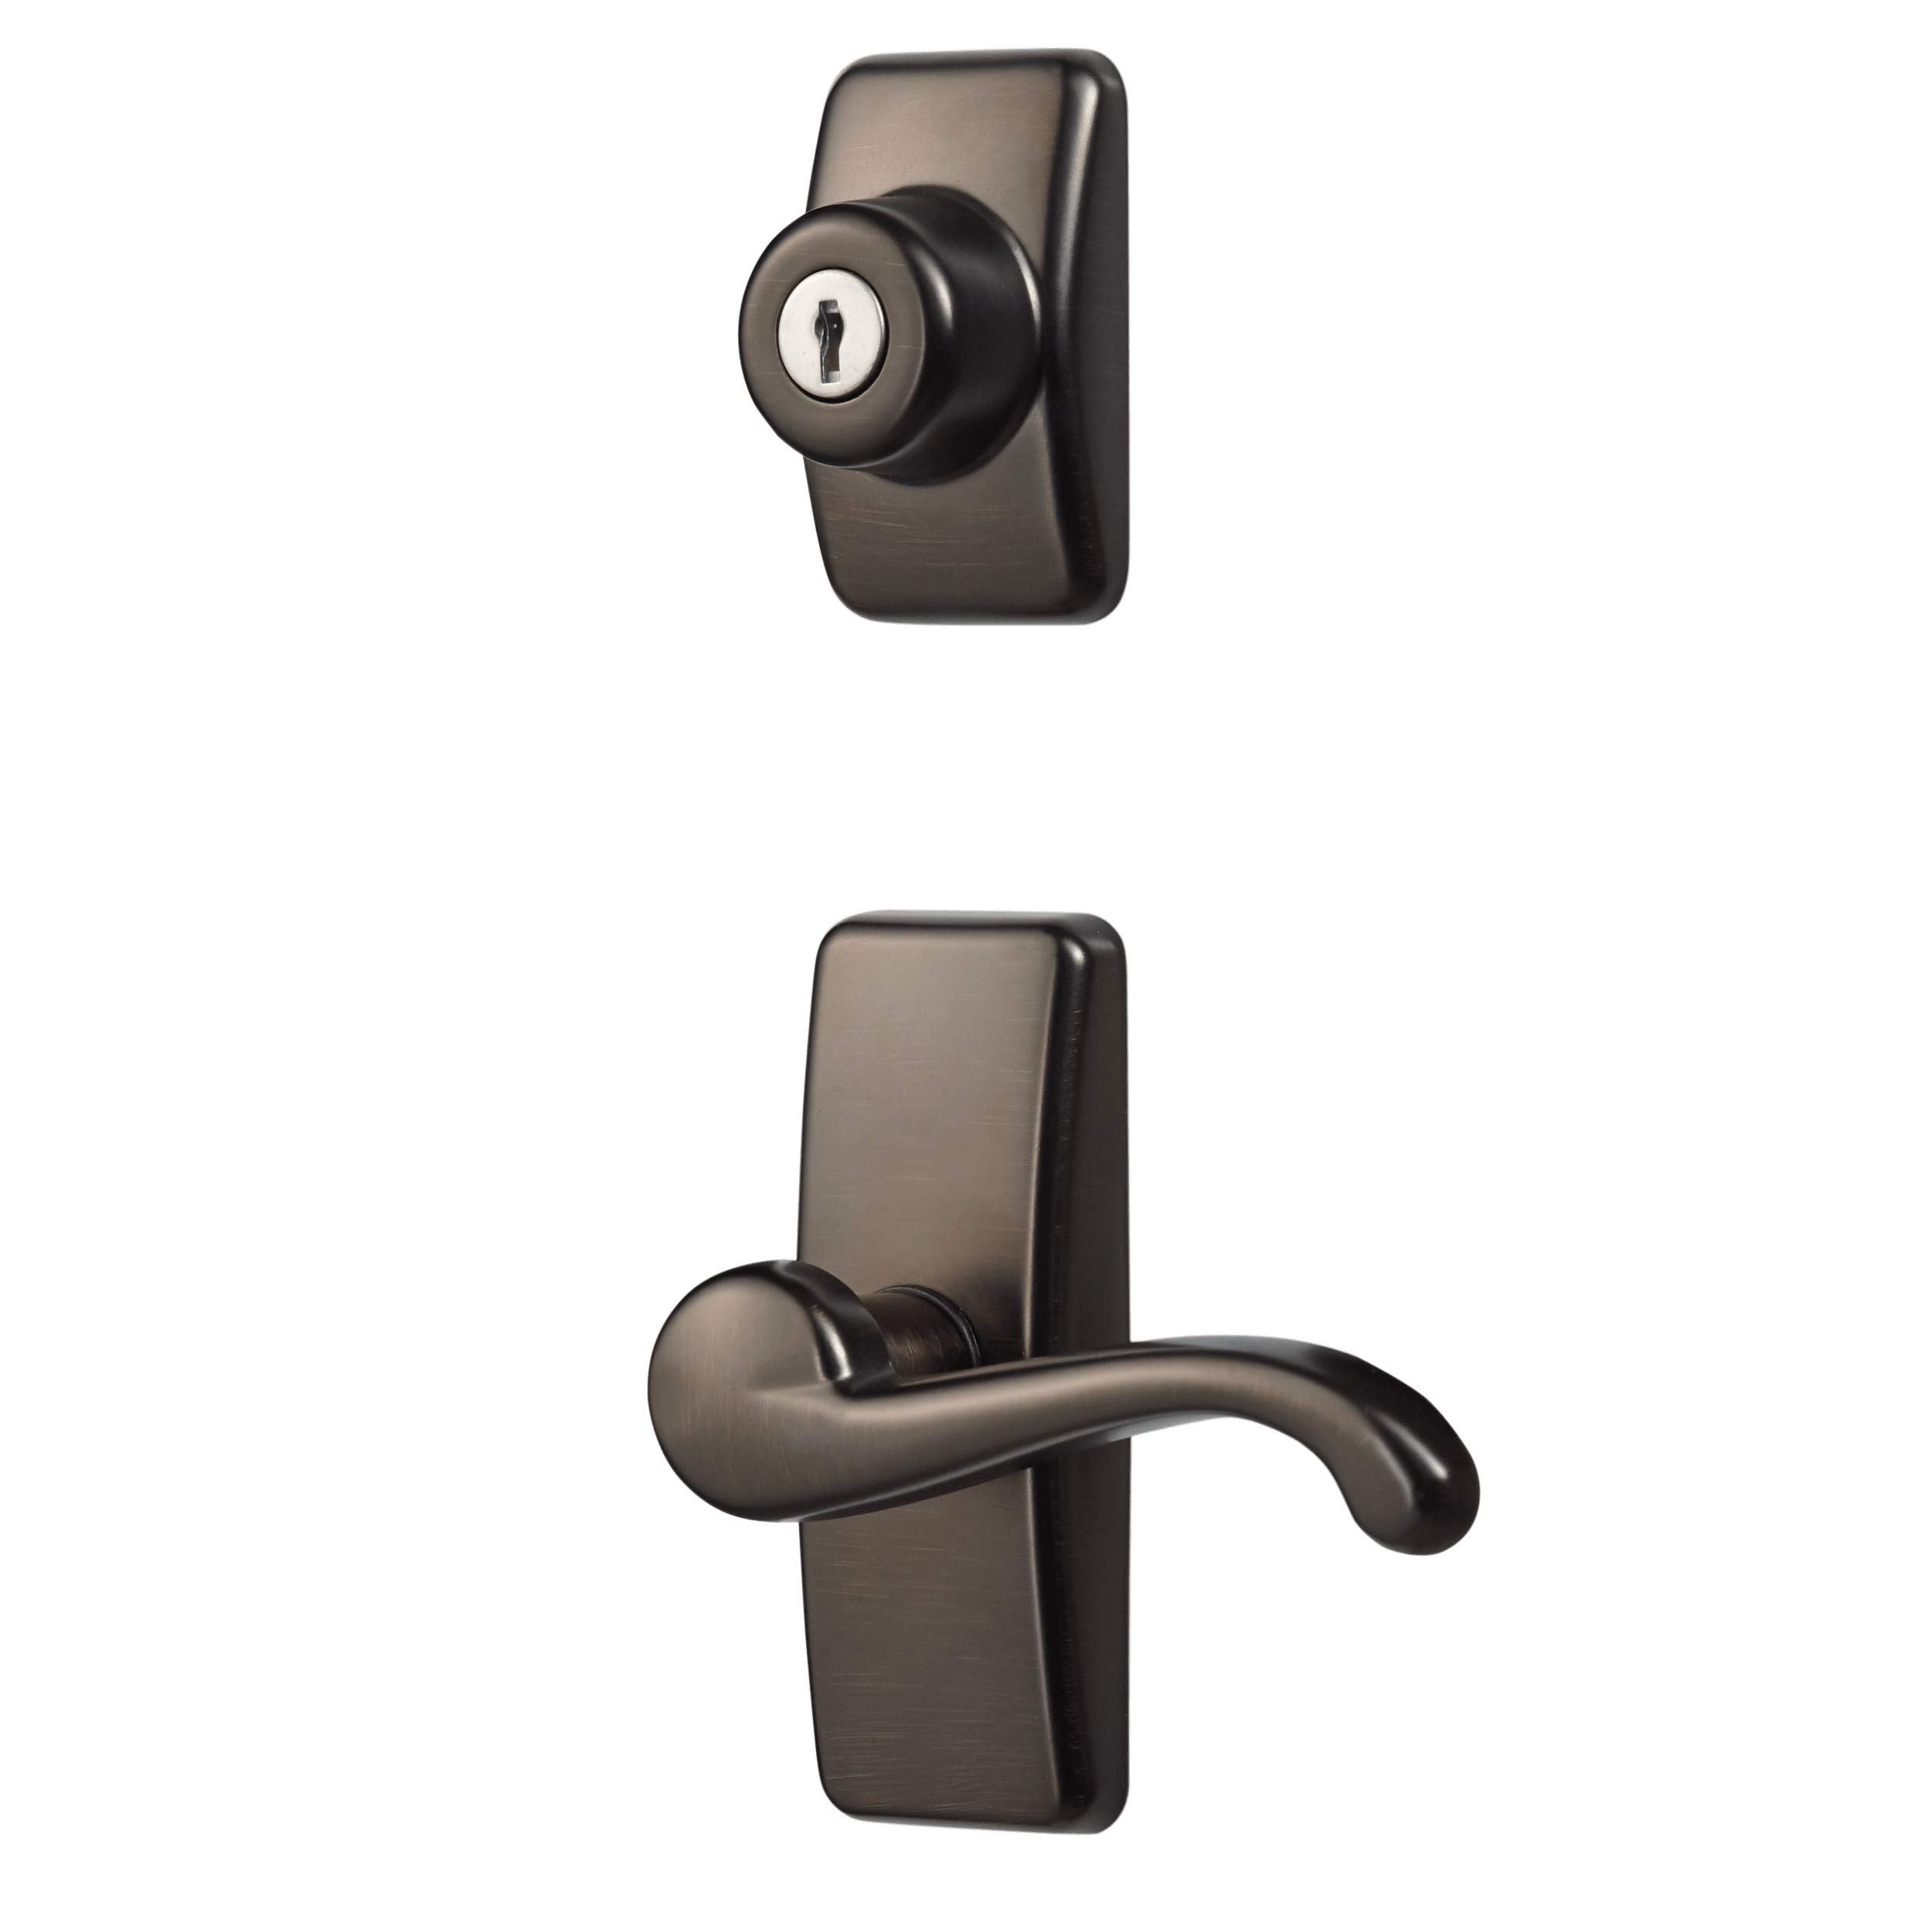 Ideal Security Inc. HK01-I-ORB GL Lever Set for Storm and Screen Doors with with Keyed Deadbolt, 4-Piece, Oil Rubbed Bronze